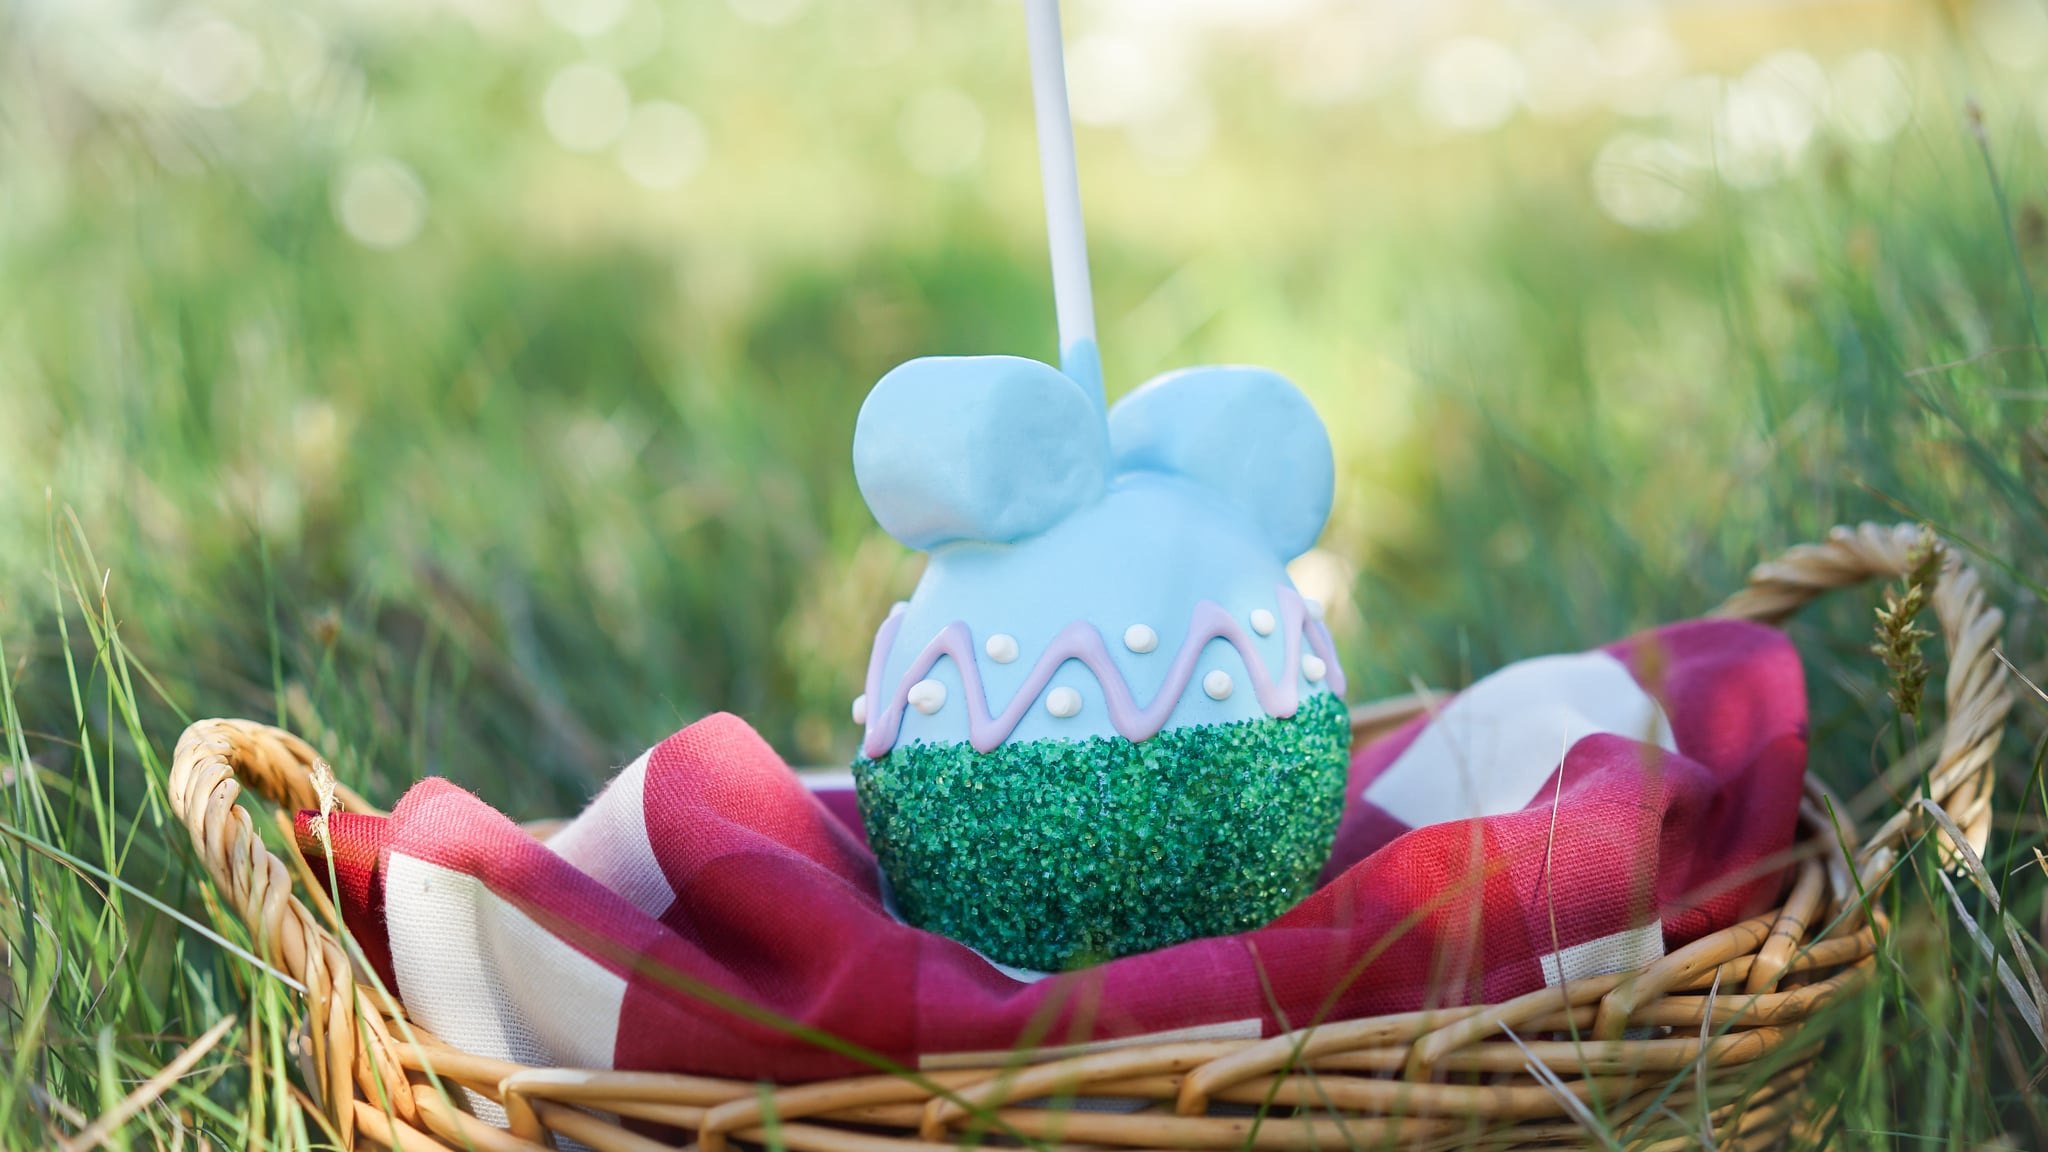 Disney easter apples popsugar food if you geek out over the ghoulish goodies and festive foods disneyland offers around halloween and christmas time youll want to peep the easter themed negle Gallery